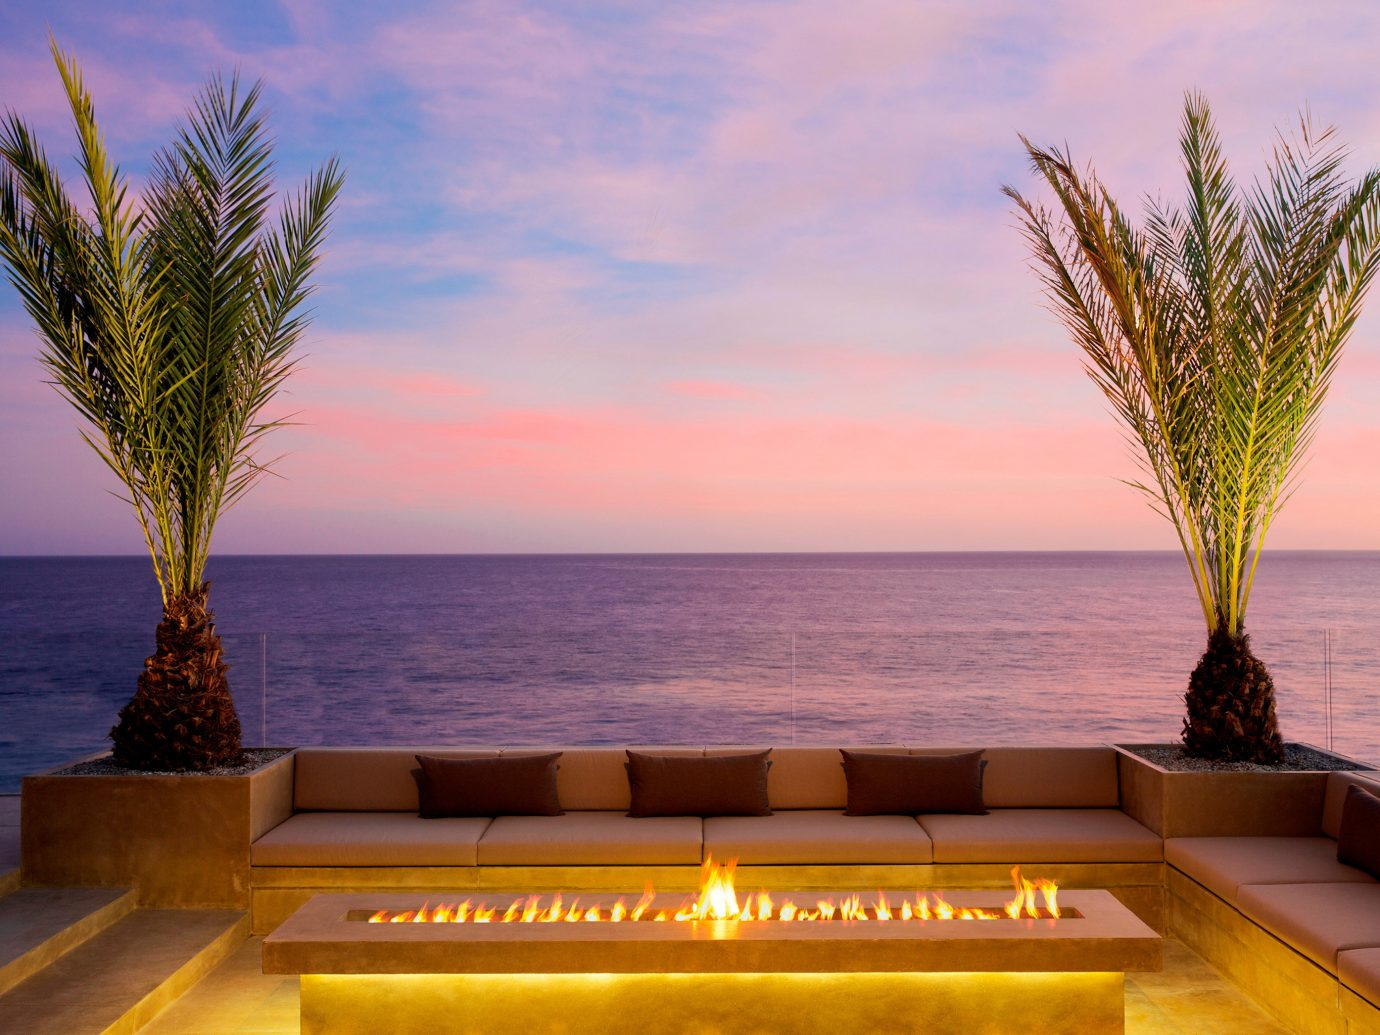 Romance Trip Ideas sky water outdoor tree vacation Ocean Sea arecales morning Sunset estate plant shore